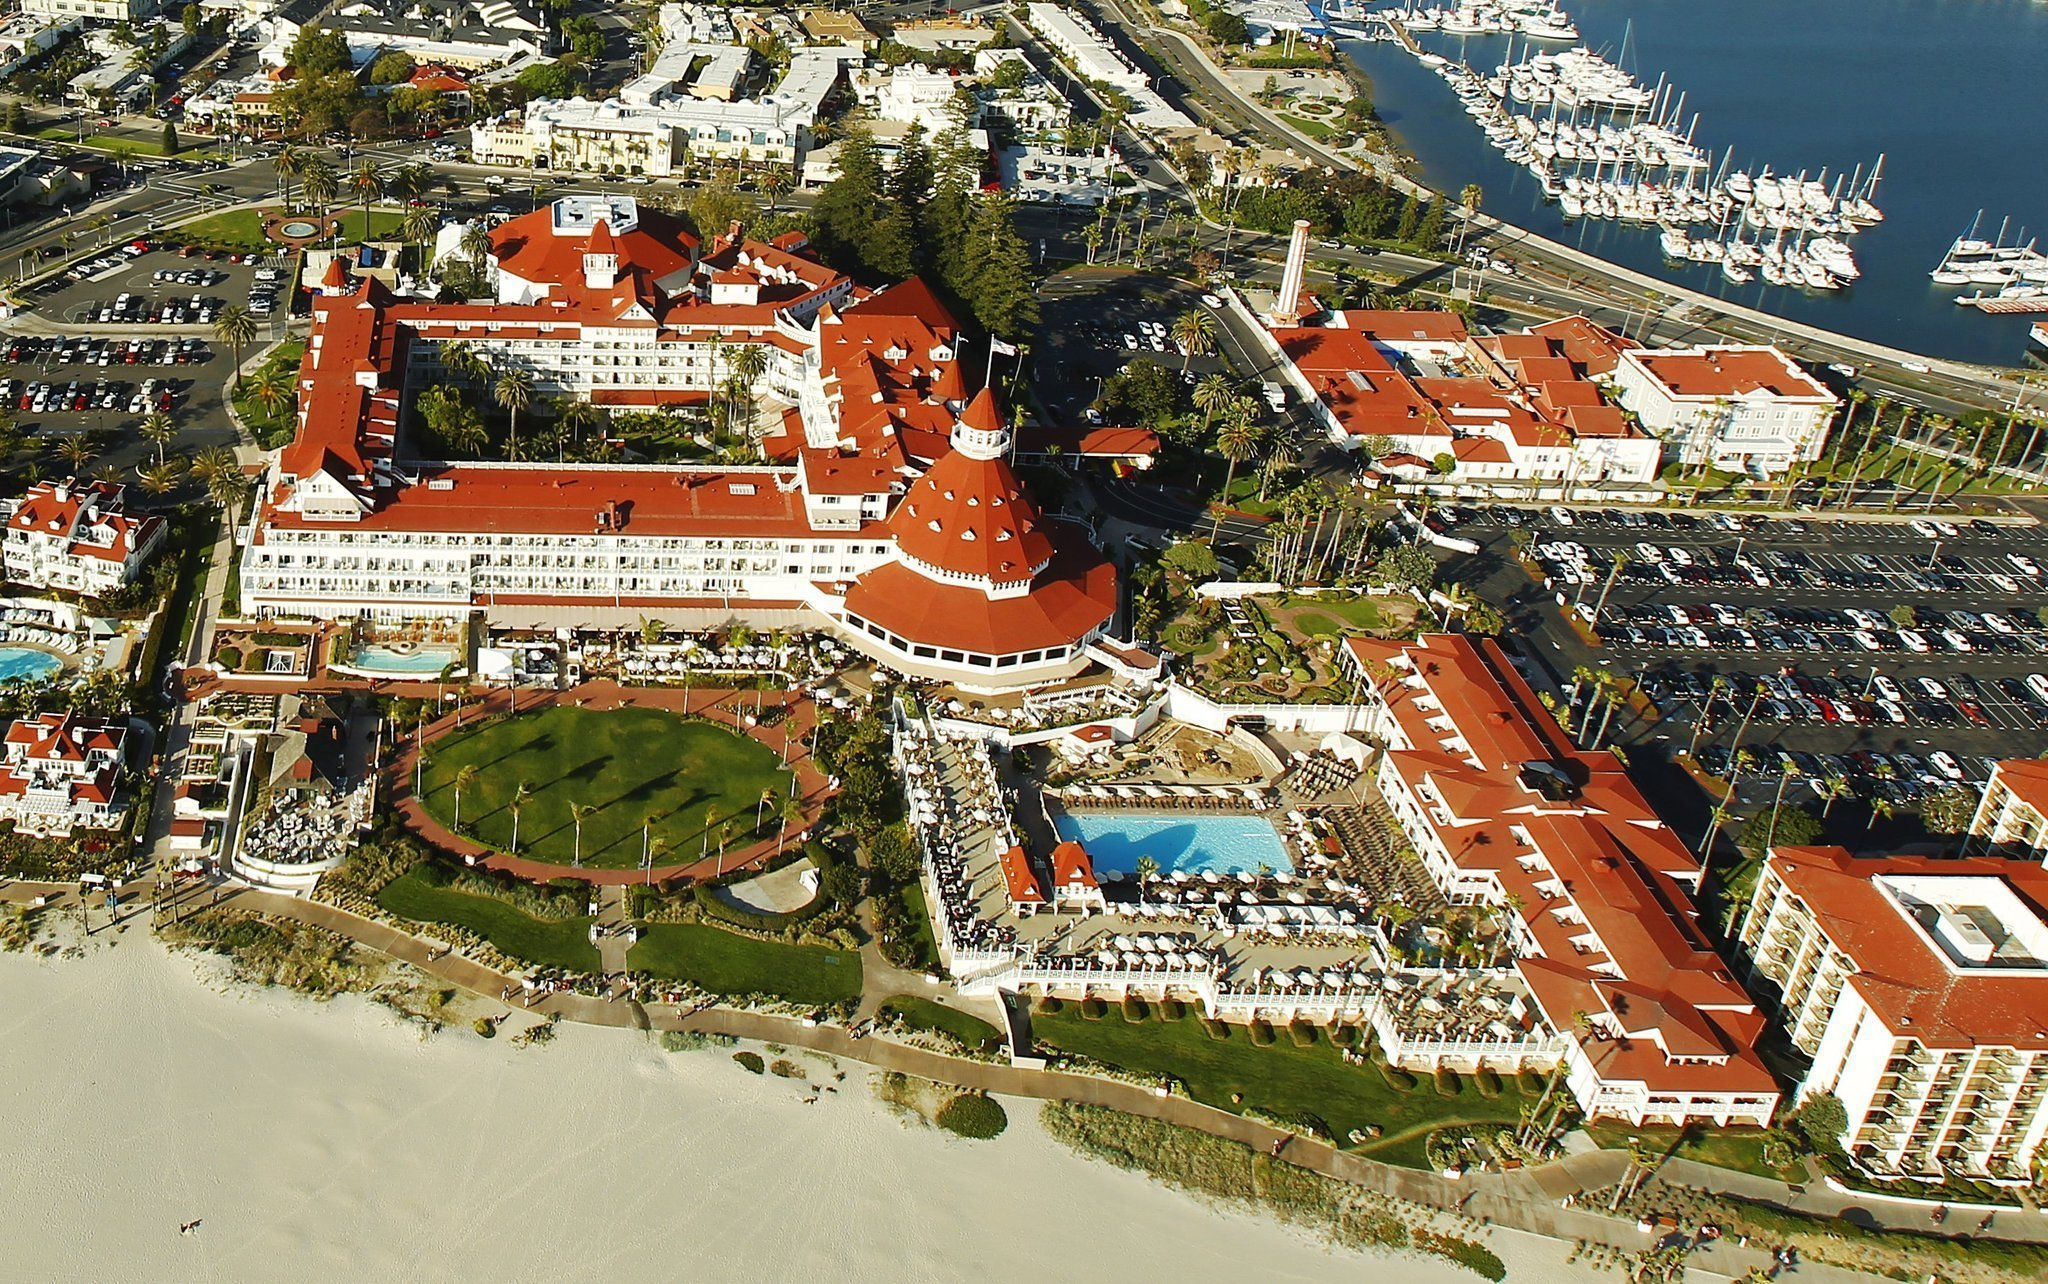 This Year S Change In Ownership At The Hotel Del Coronado Was Priciest State During First Half Of 2017